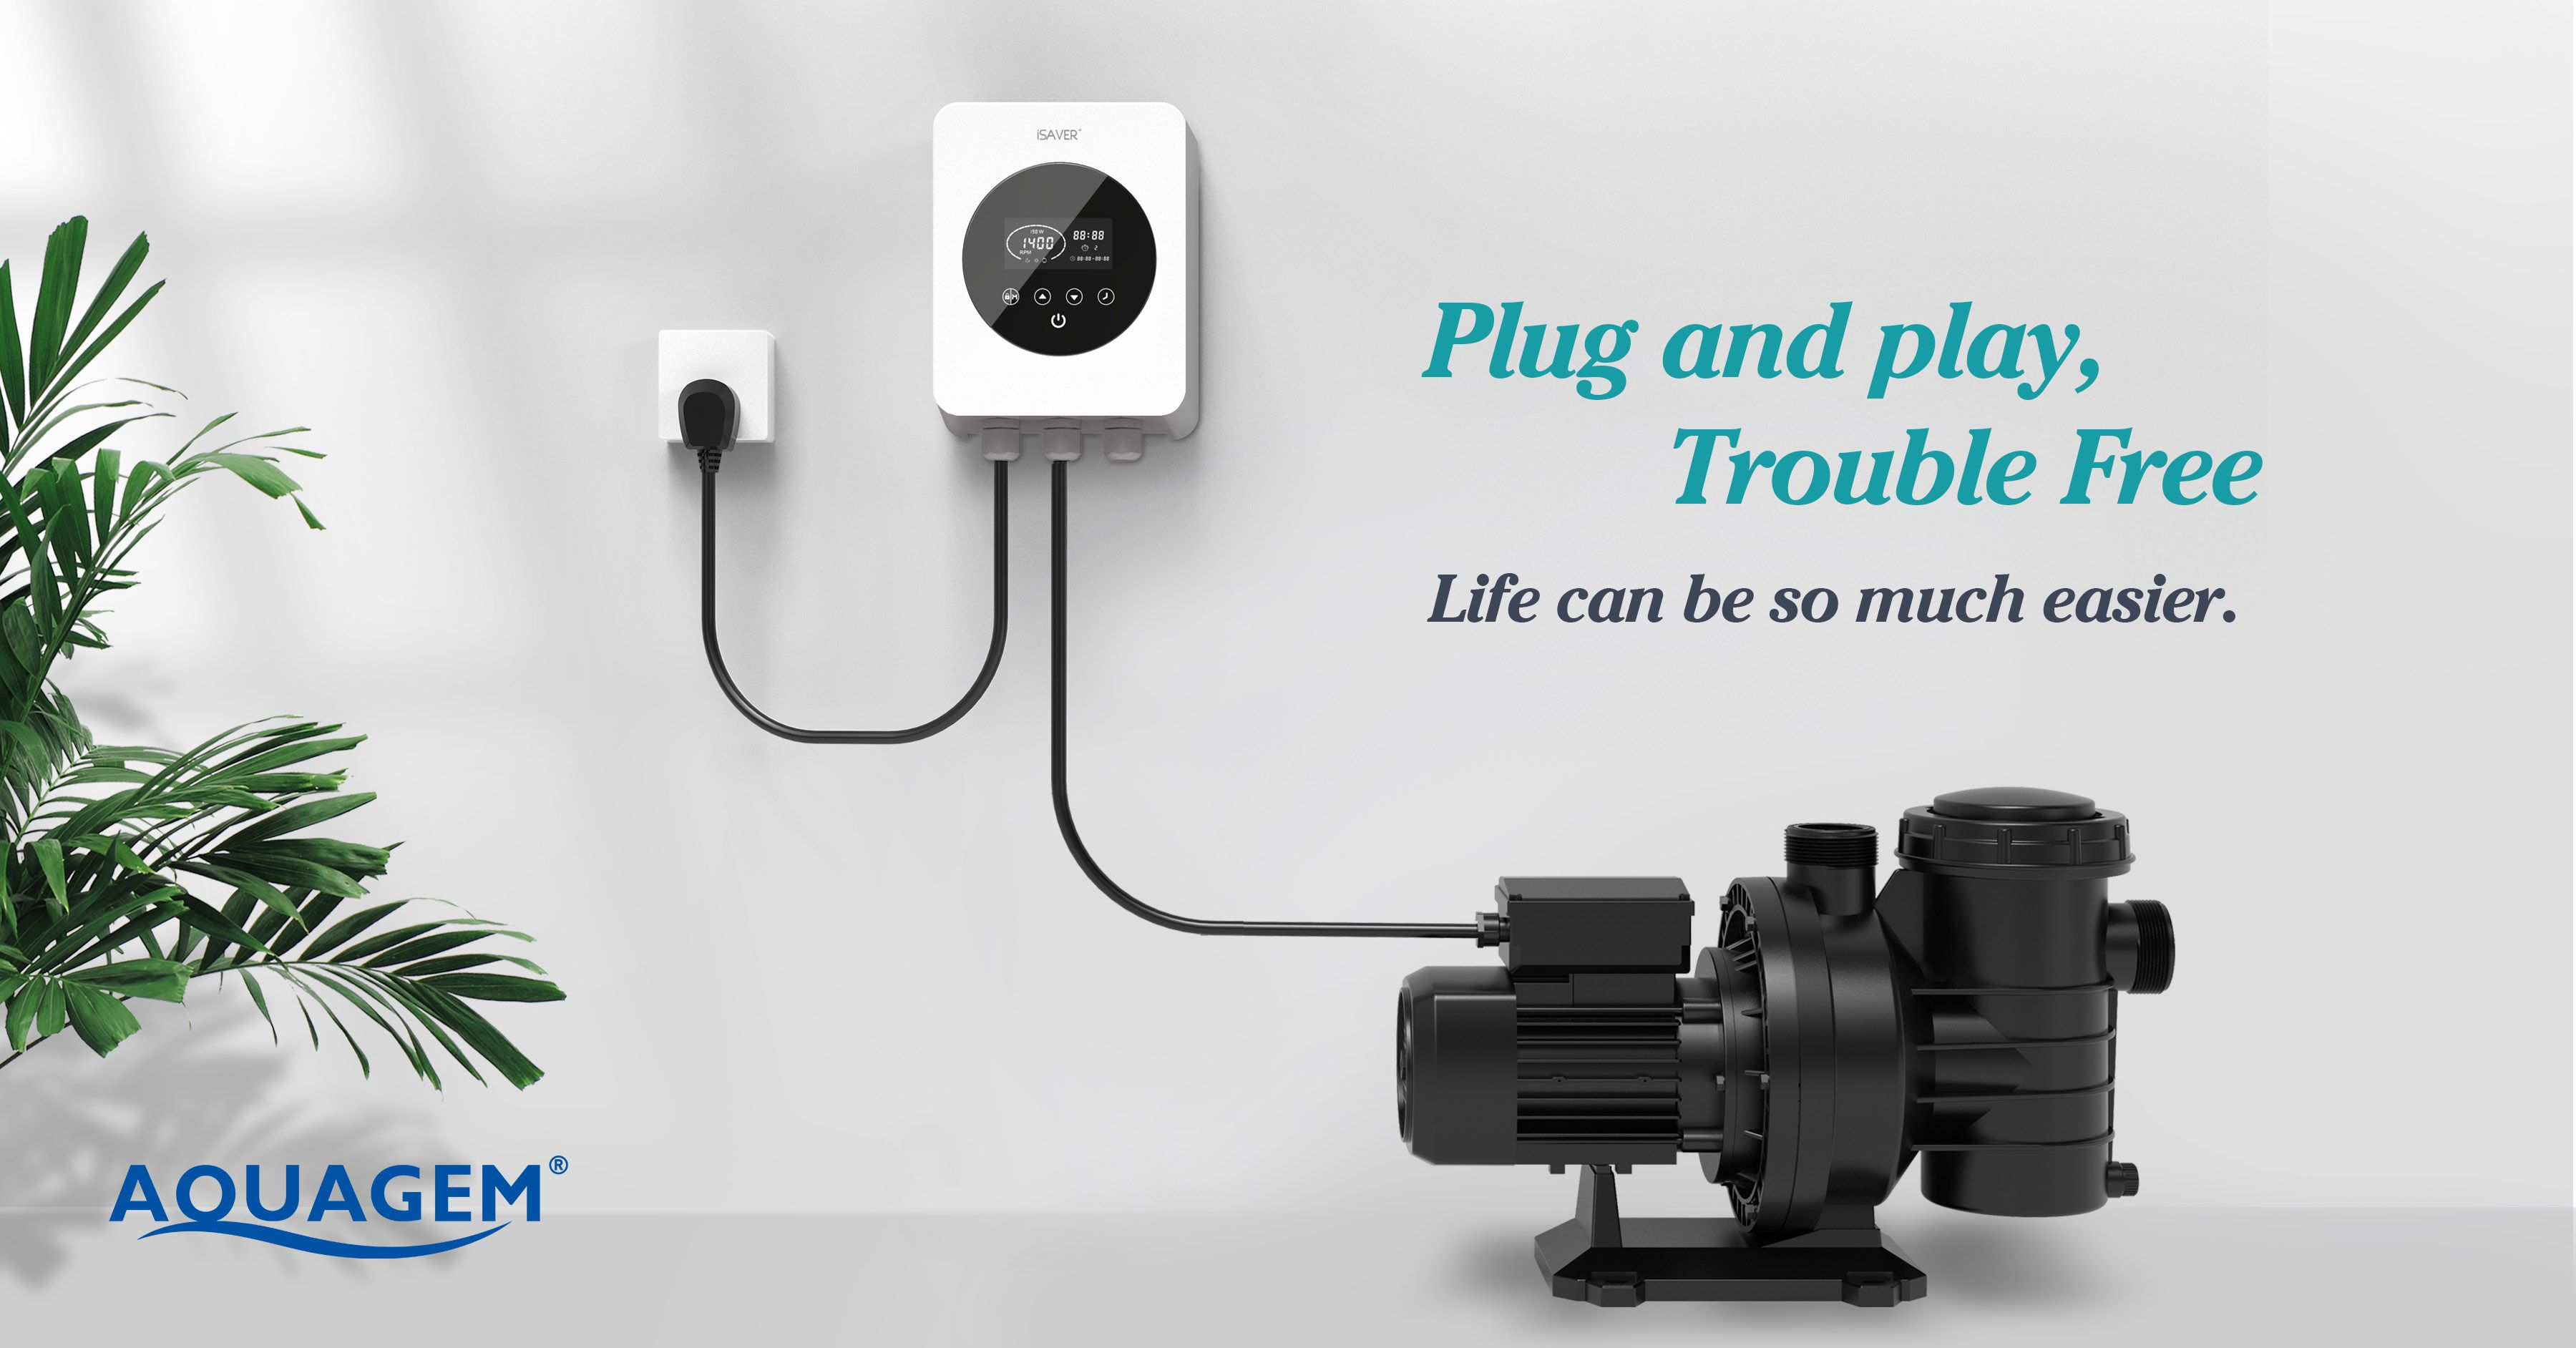 Too Much Hassle For Installation Now You Can Do It Yourself With A Plug And Play Model Isaver Aquagem Isaverplus Frequencyinverter Swimmingpool